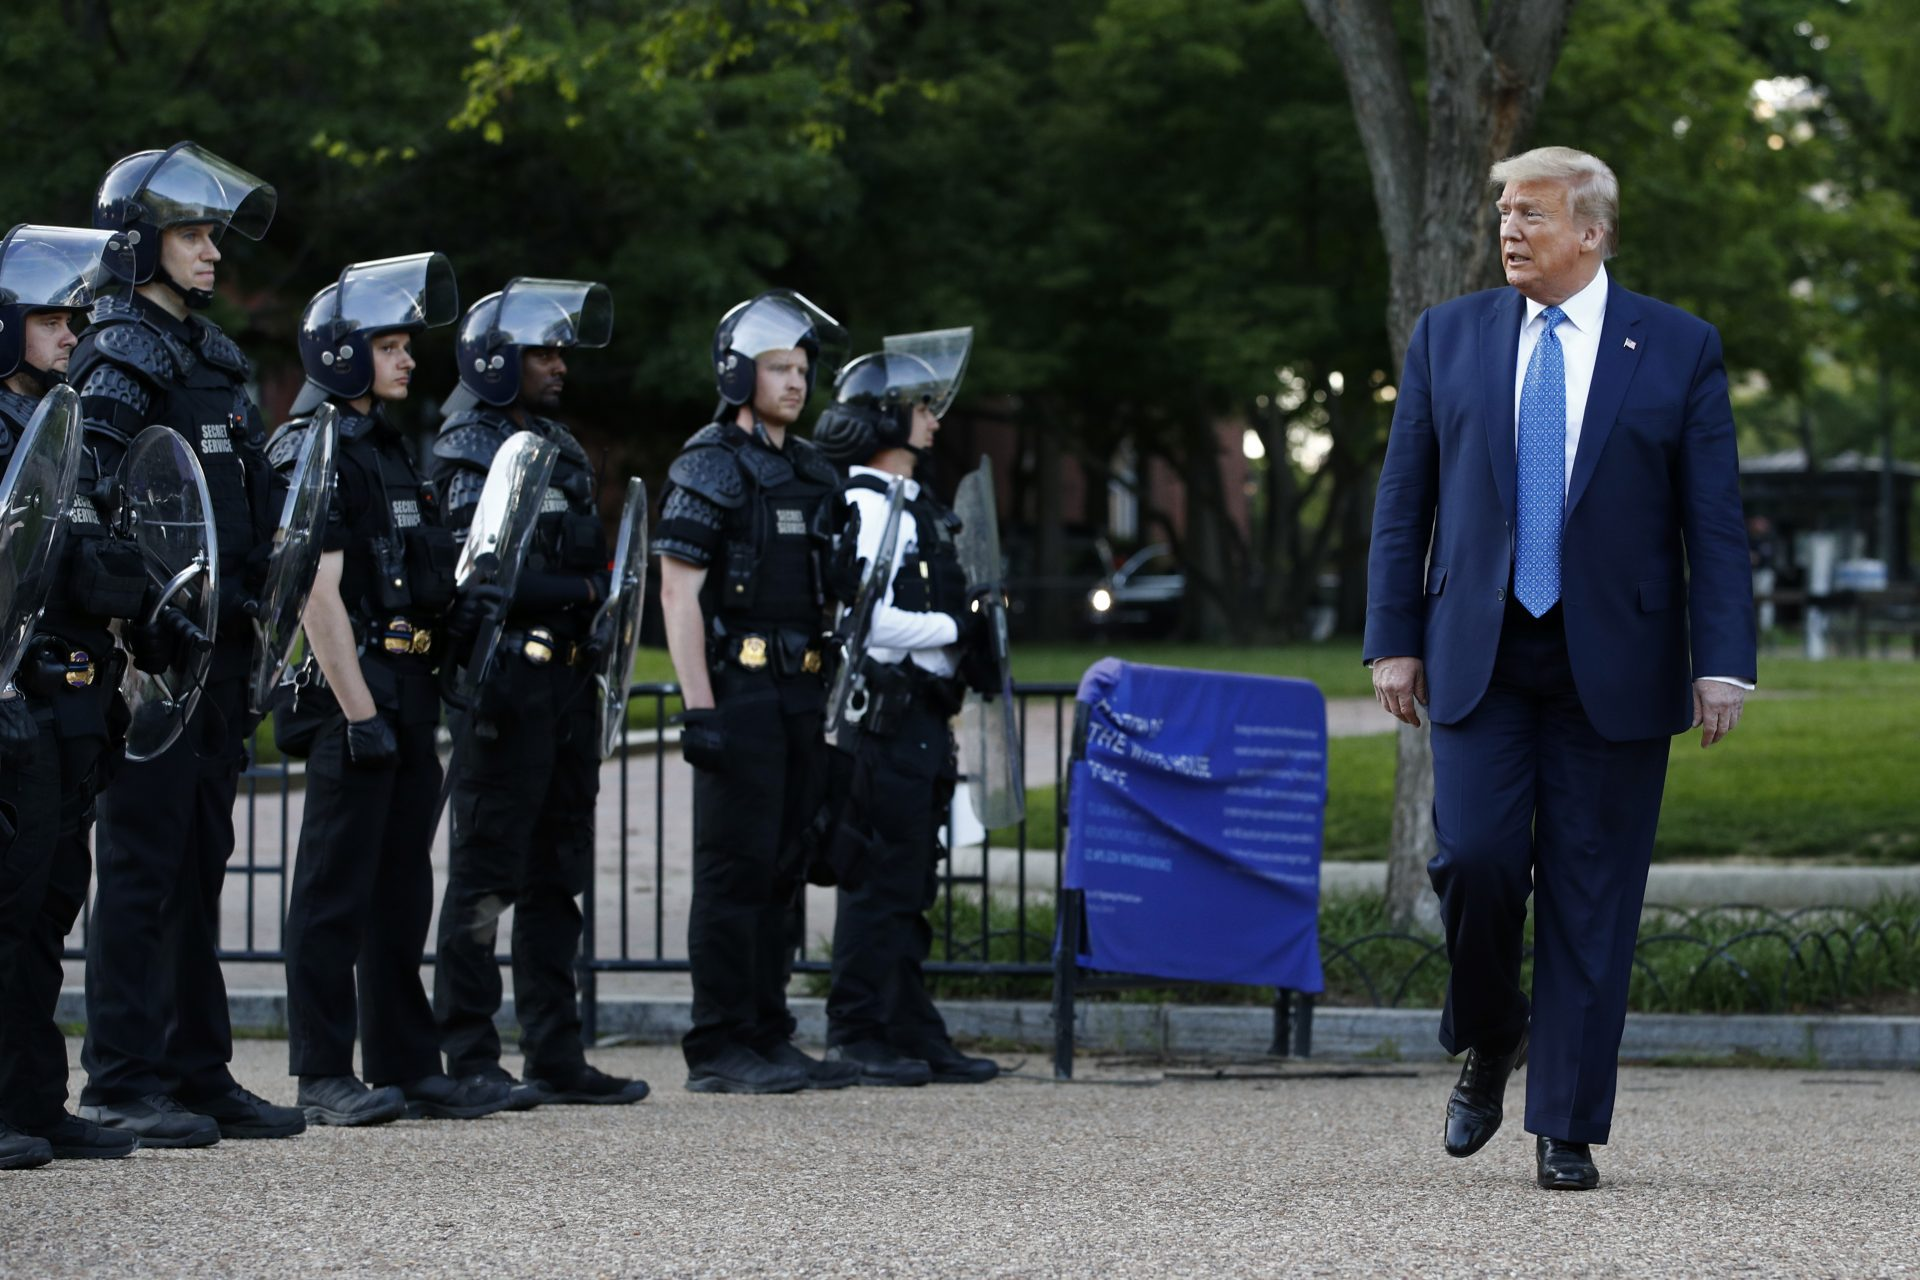 President Donald Trump walks past police in Lafayette Park after visiting outside St. John's Church across from the White House Monday, June 1, 2020, in Washington. Part of the church was set on fire during protests on Sunday night.